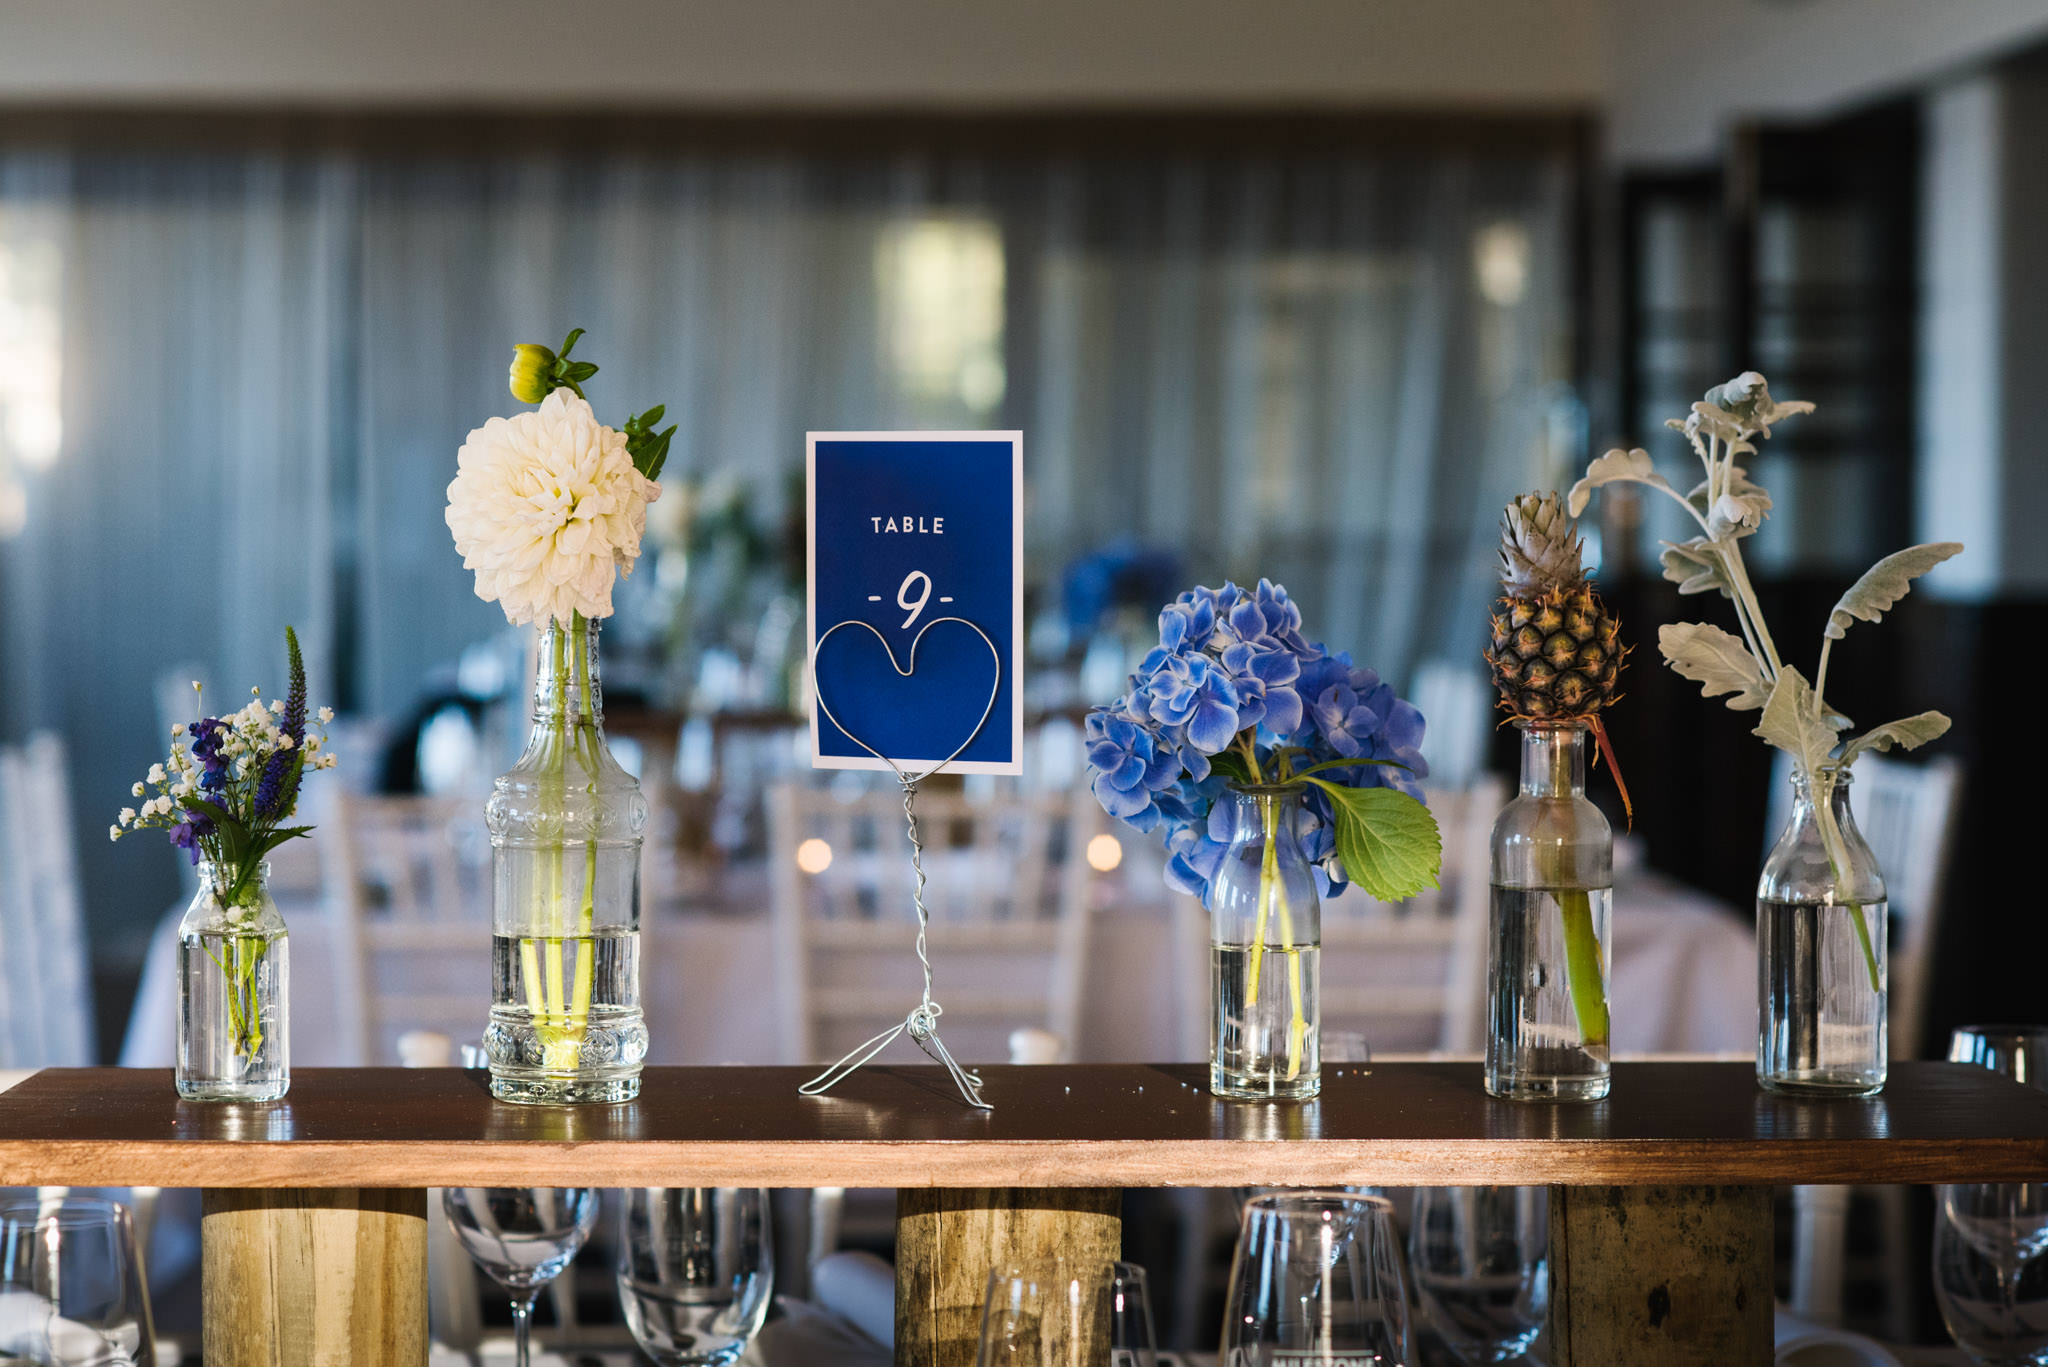 Carefully crafted reception details are a feature of the wedding planners at Milestone Events